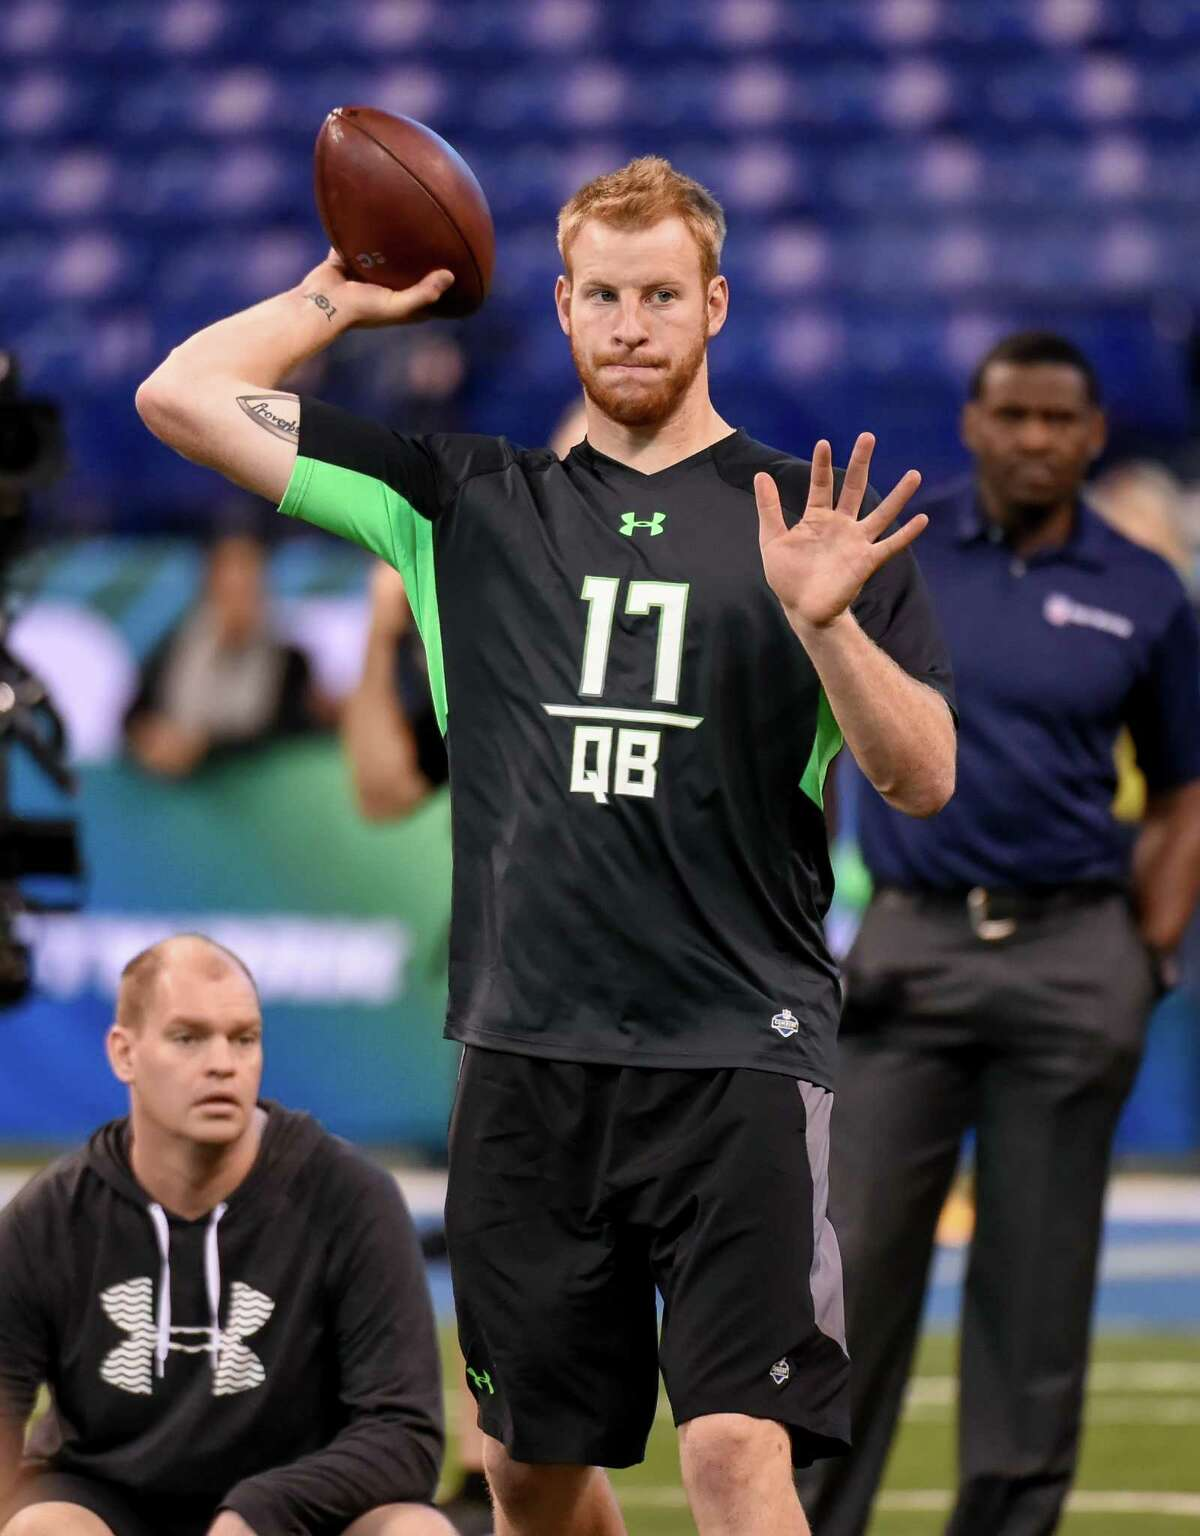 North Dakota State quarterback Carson Wentz runs a drill at the NFL Scouting Combine on Feb. 27, 2016, in Indianapolis.